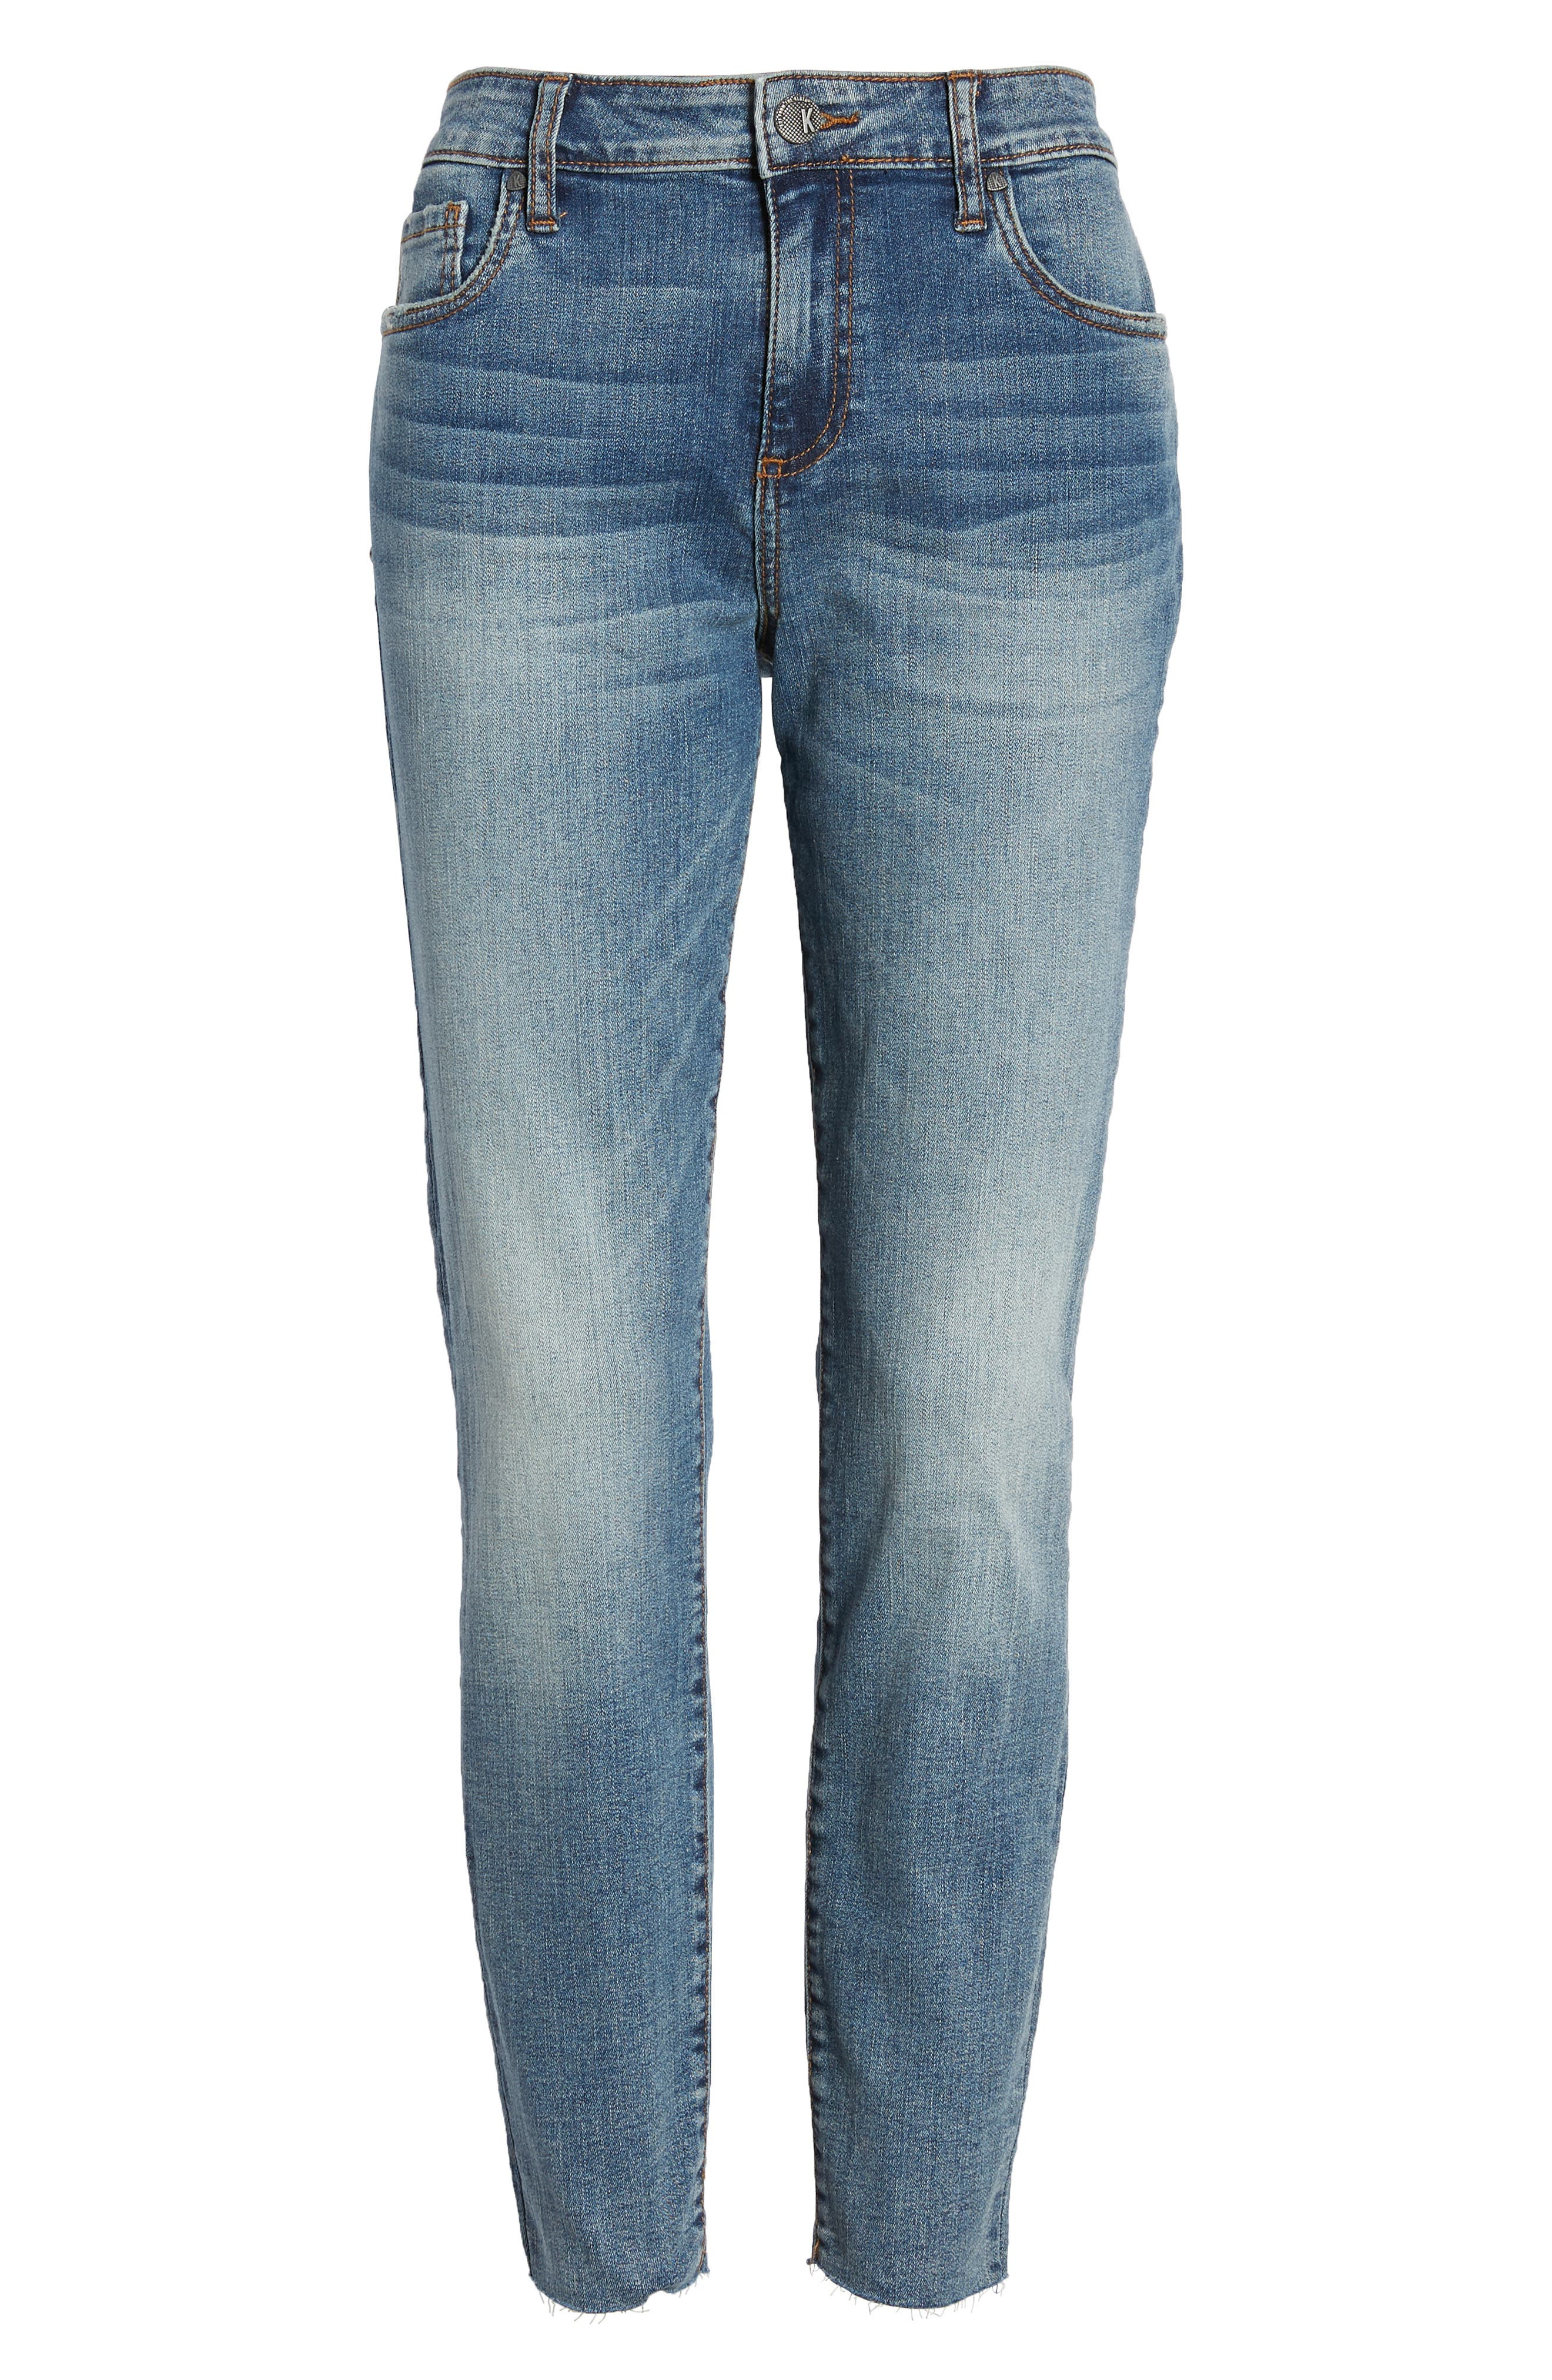 KUT FROM THE KLOTH, Donna High Waist Raw Hem Skinny Jeans, Alternate thumbnail 6, color, PHILOSOPHICAL